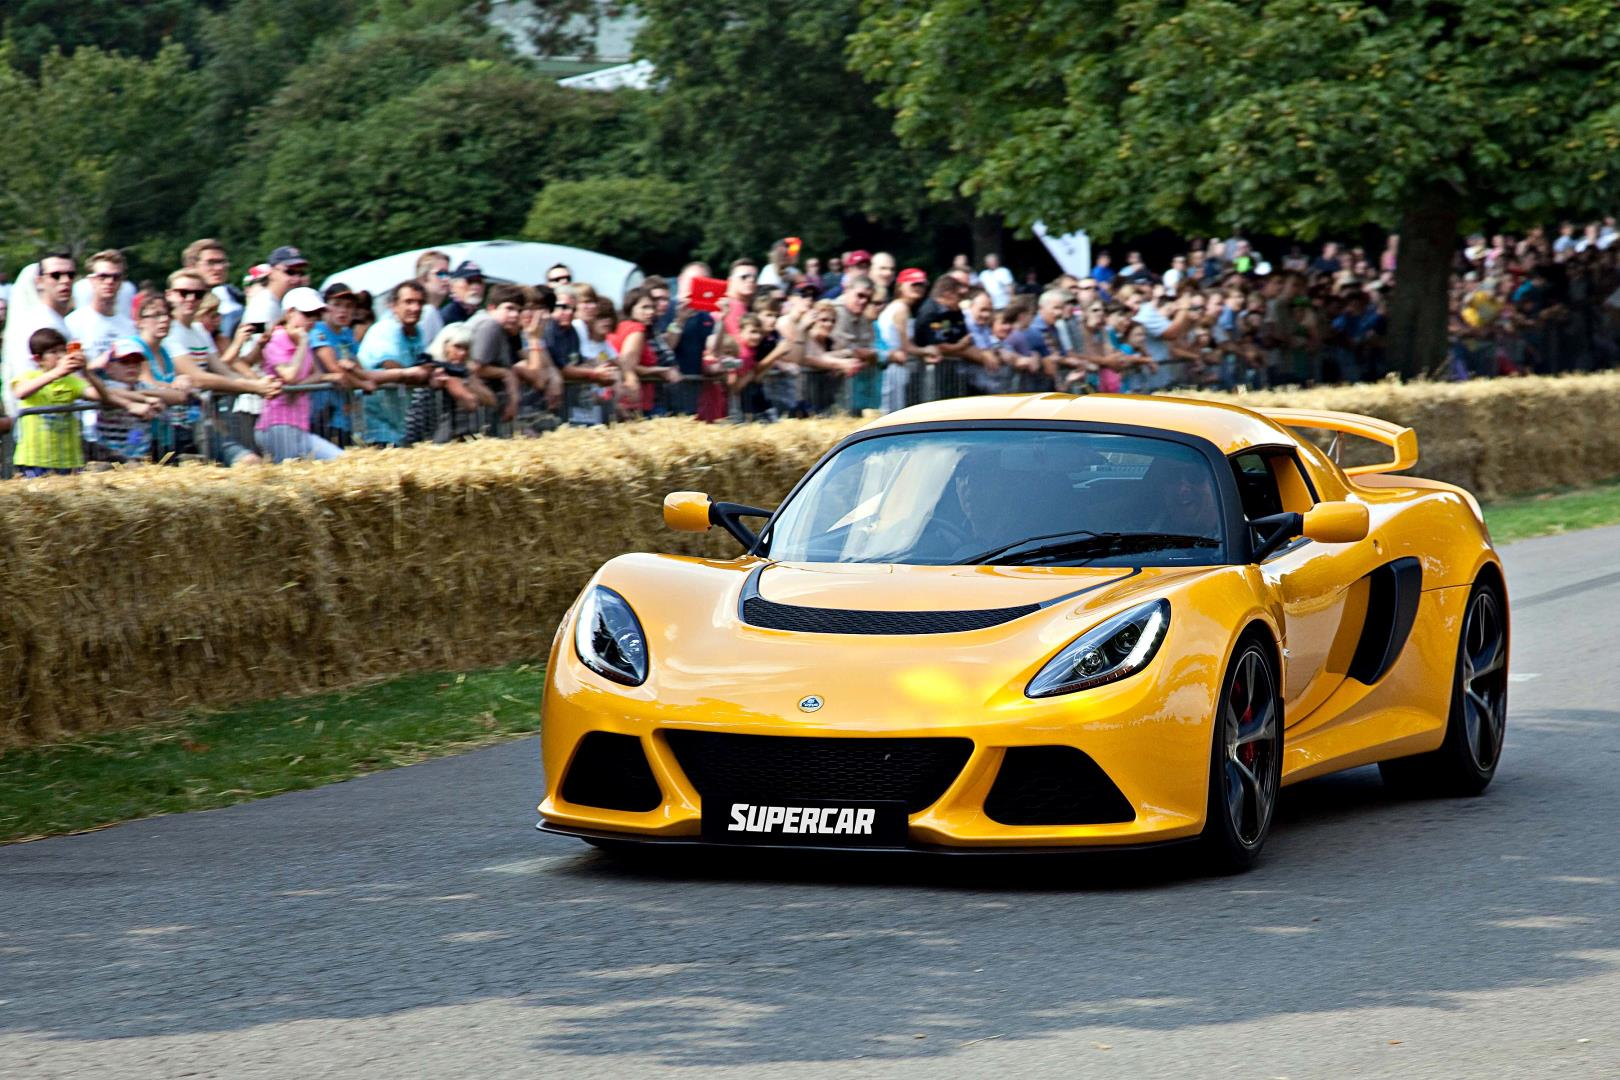 Beaulieu Supercar Weekend demonstration runs